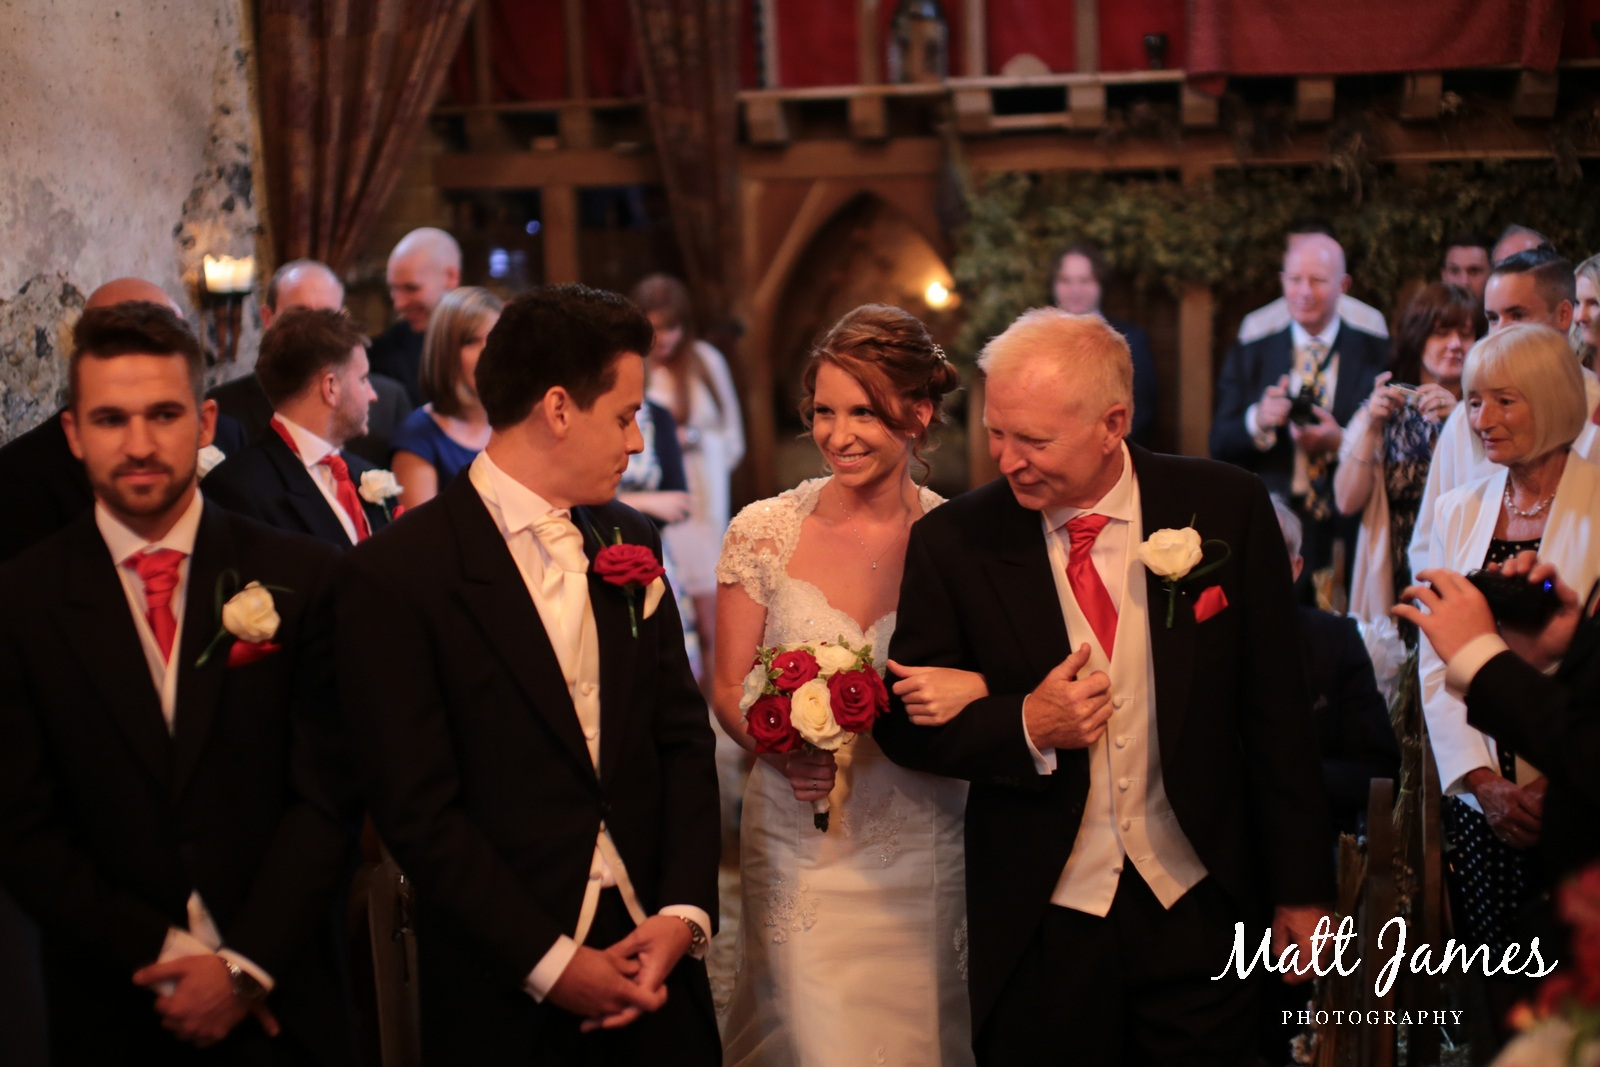 Laura-and-Tom-Matt-James-Photography-1-27